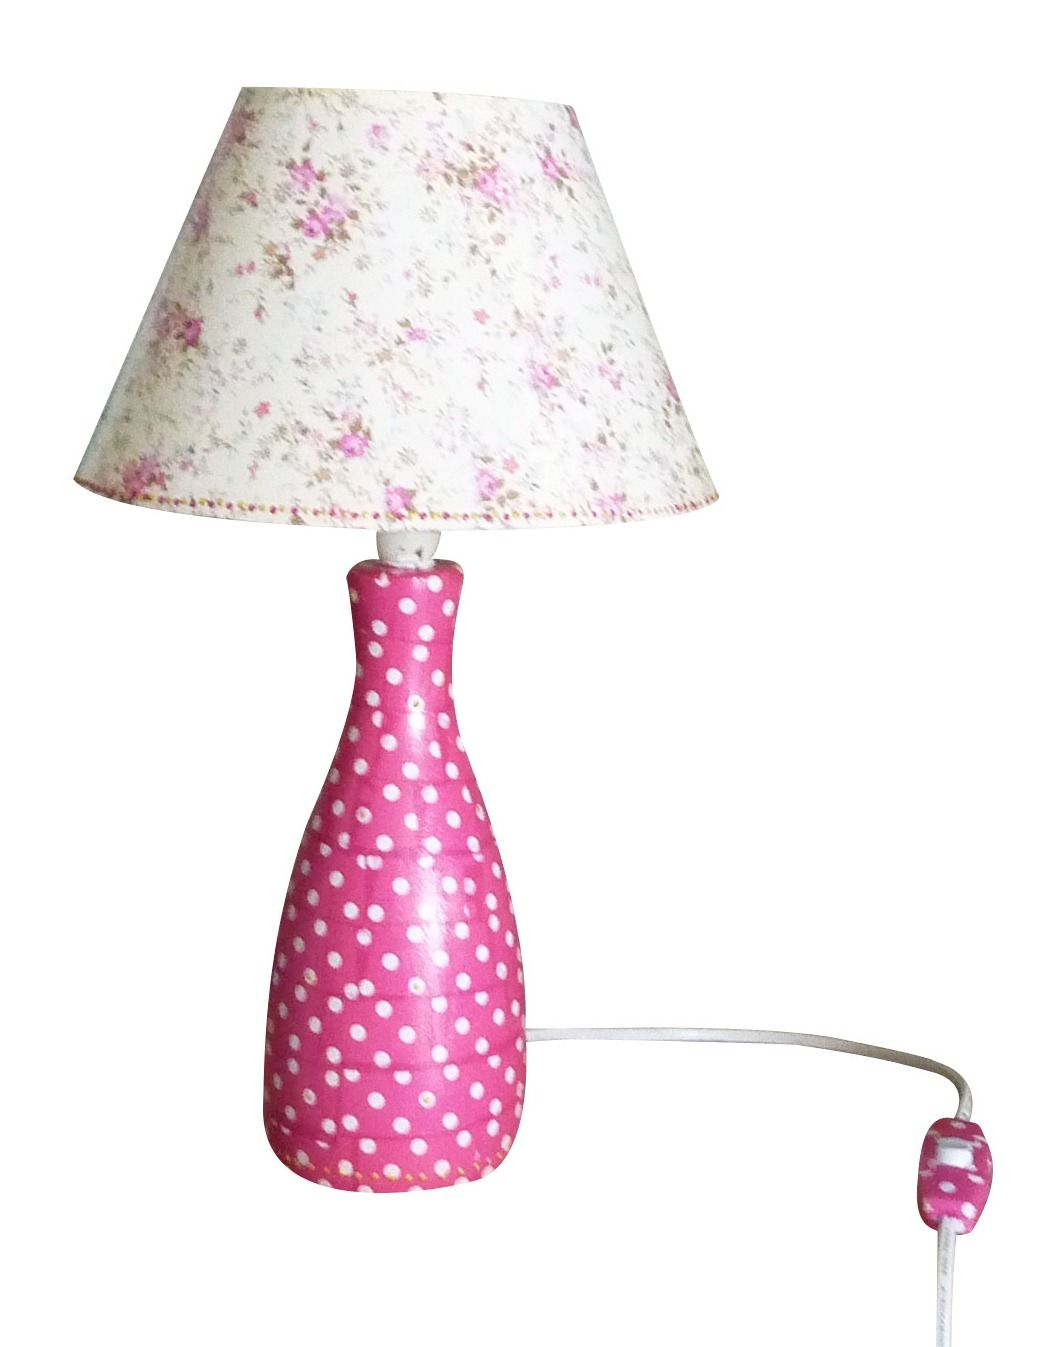 Decoupaged lamp (base, shade and switch button) using pretty